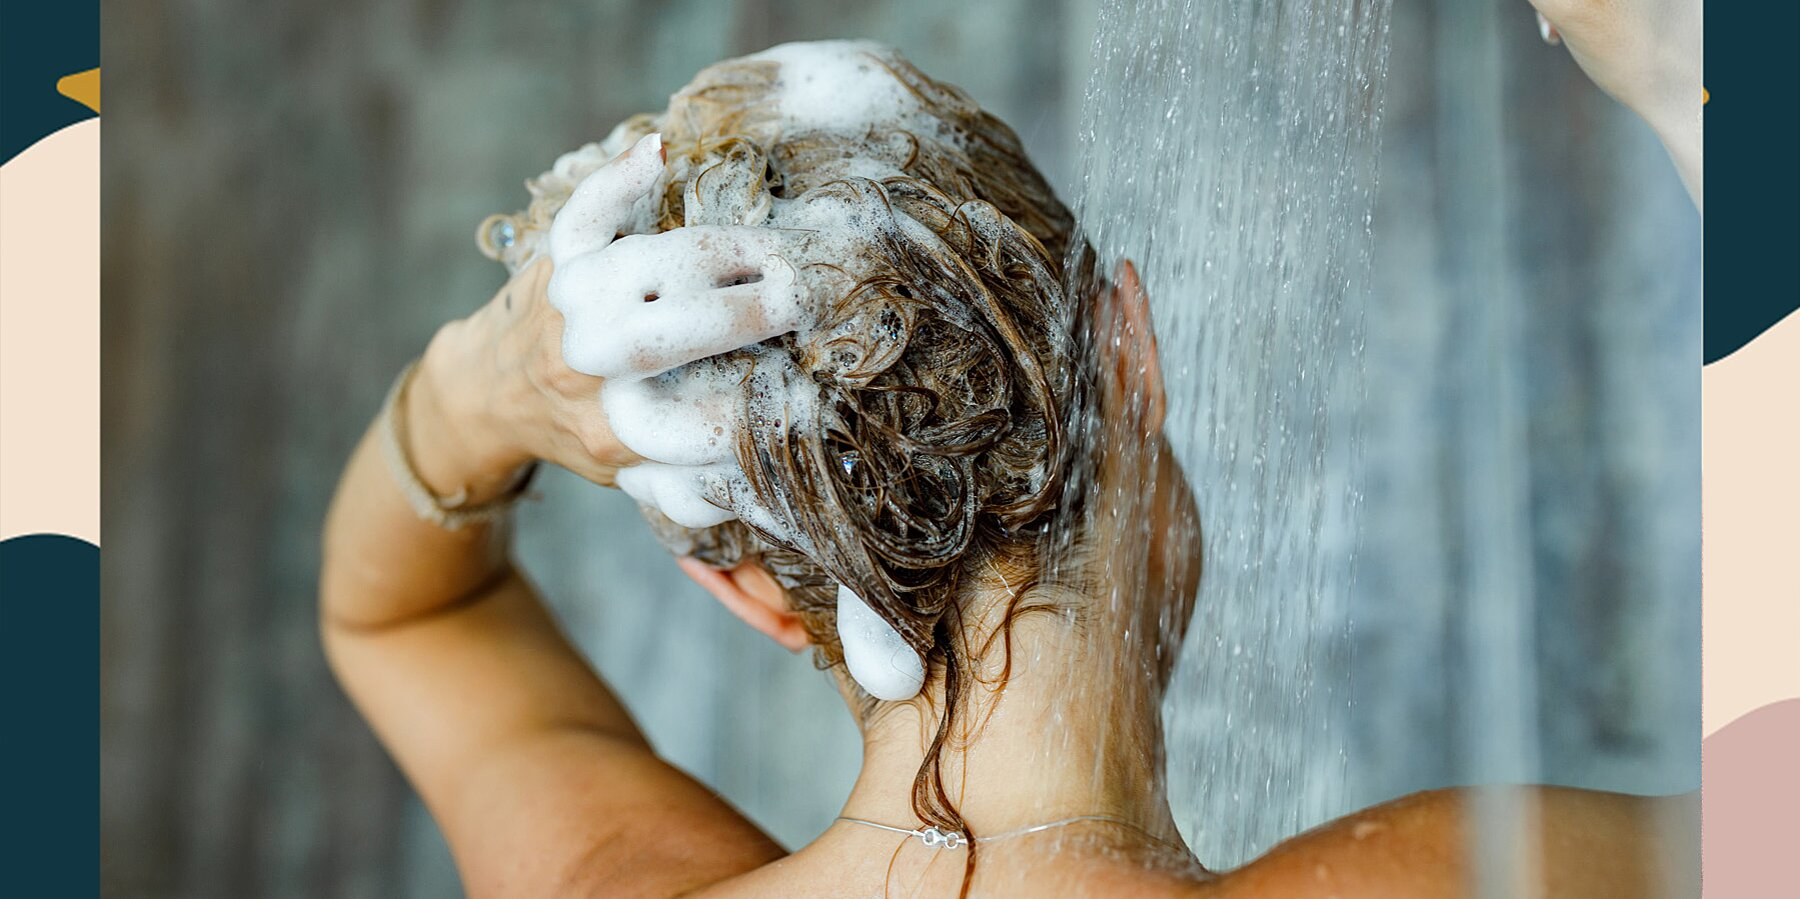 Zinc Pyrithione: The Dandruff-Fighting Superstar You Need in Your Shower